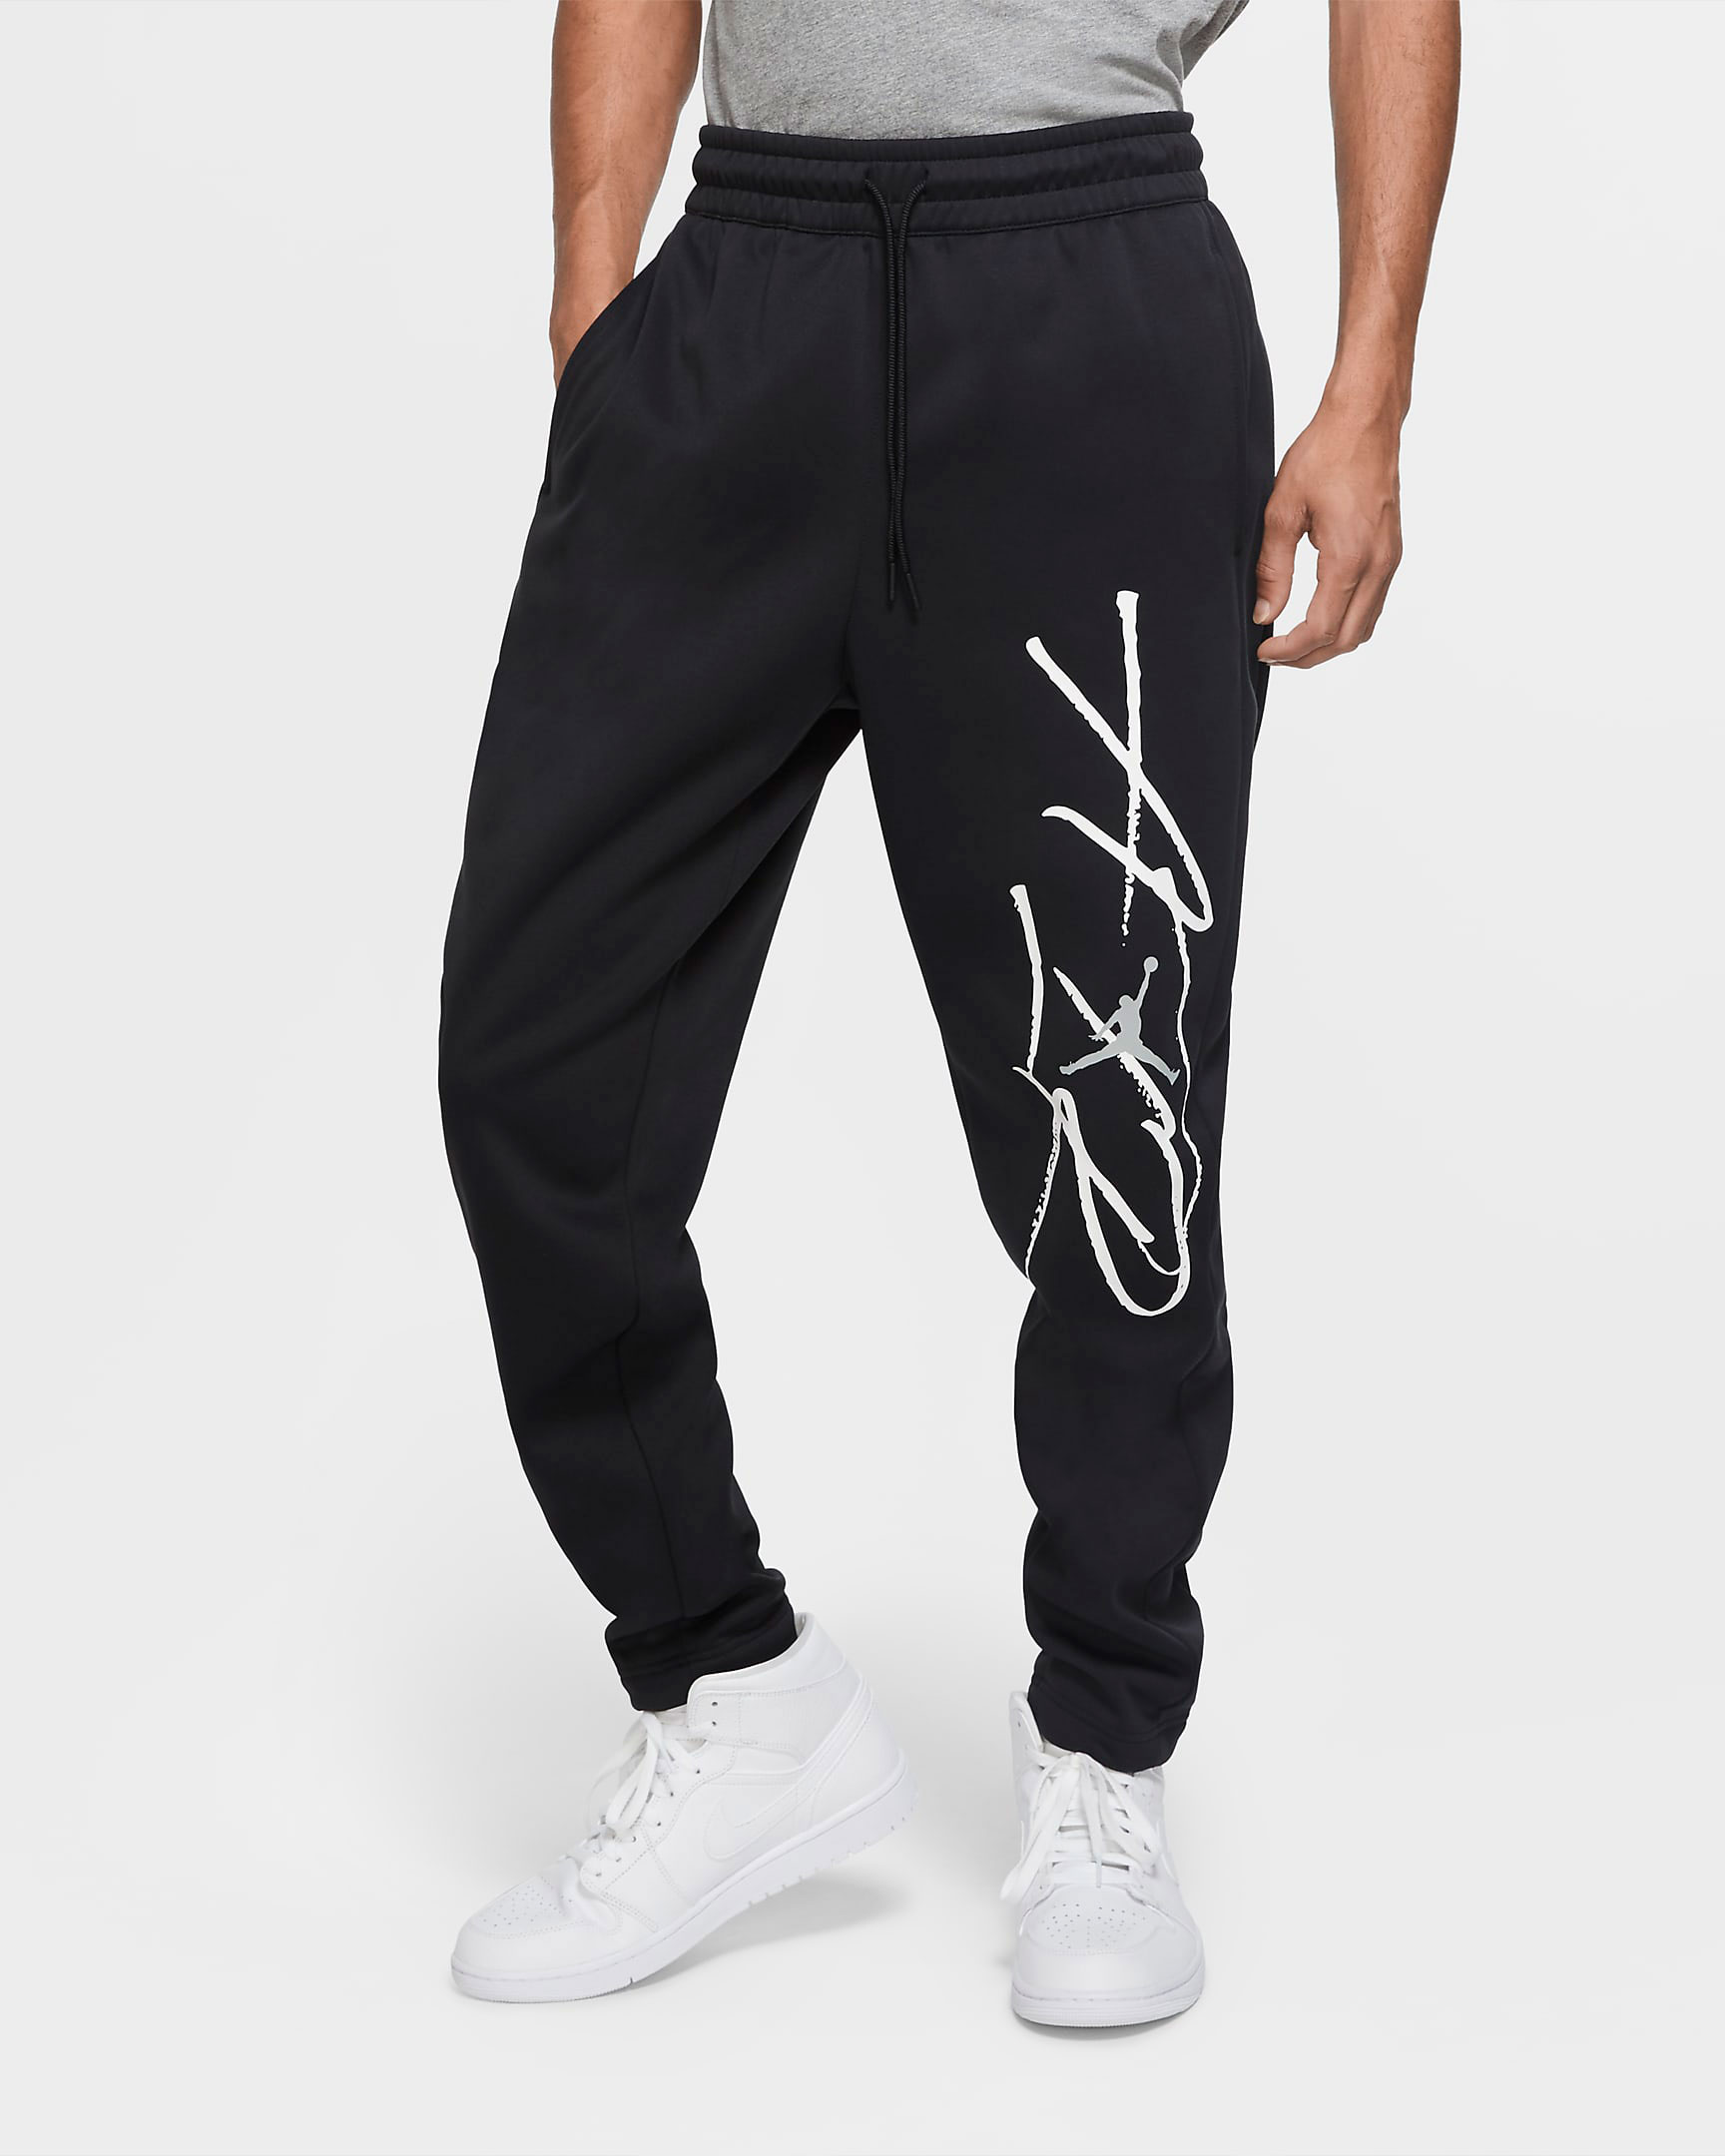 jordan-11-jubilee-black-white-pants-match